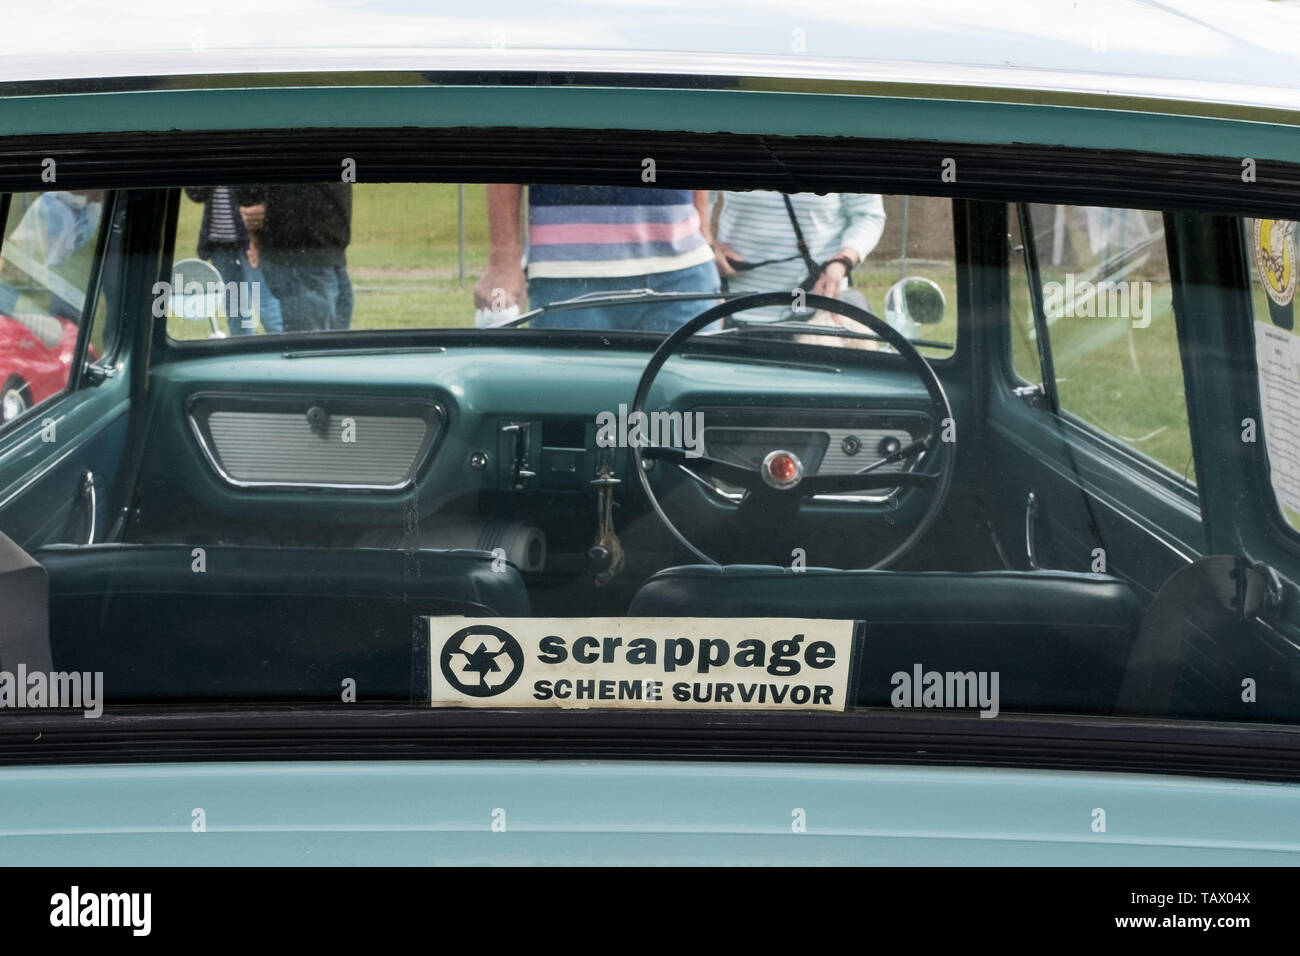 """Classic car with """"scrappage scheme survivor"""" sticker in rear window, Classic Car and Motorbike show, Winchester, Hampshire, UK - Stock Image"""